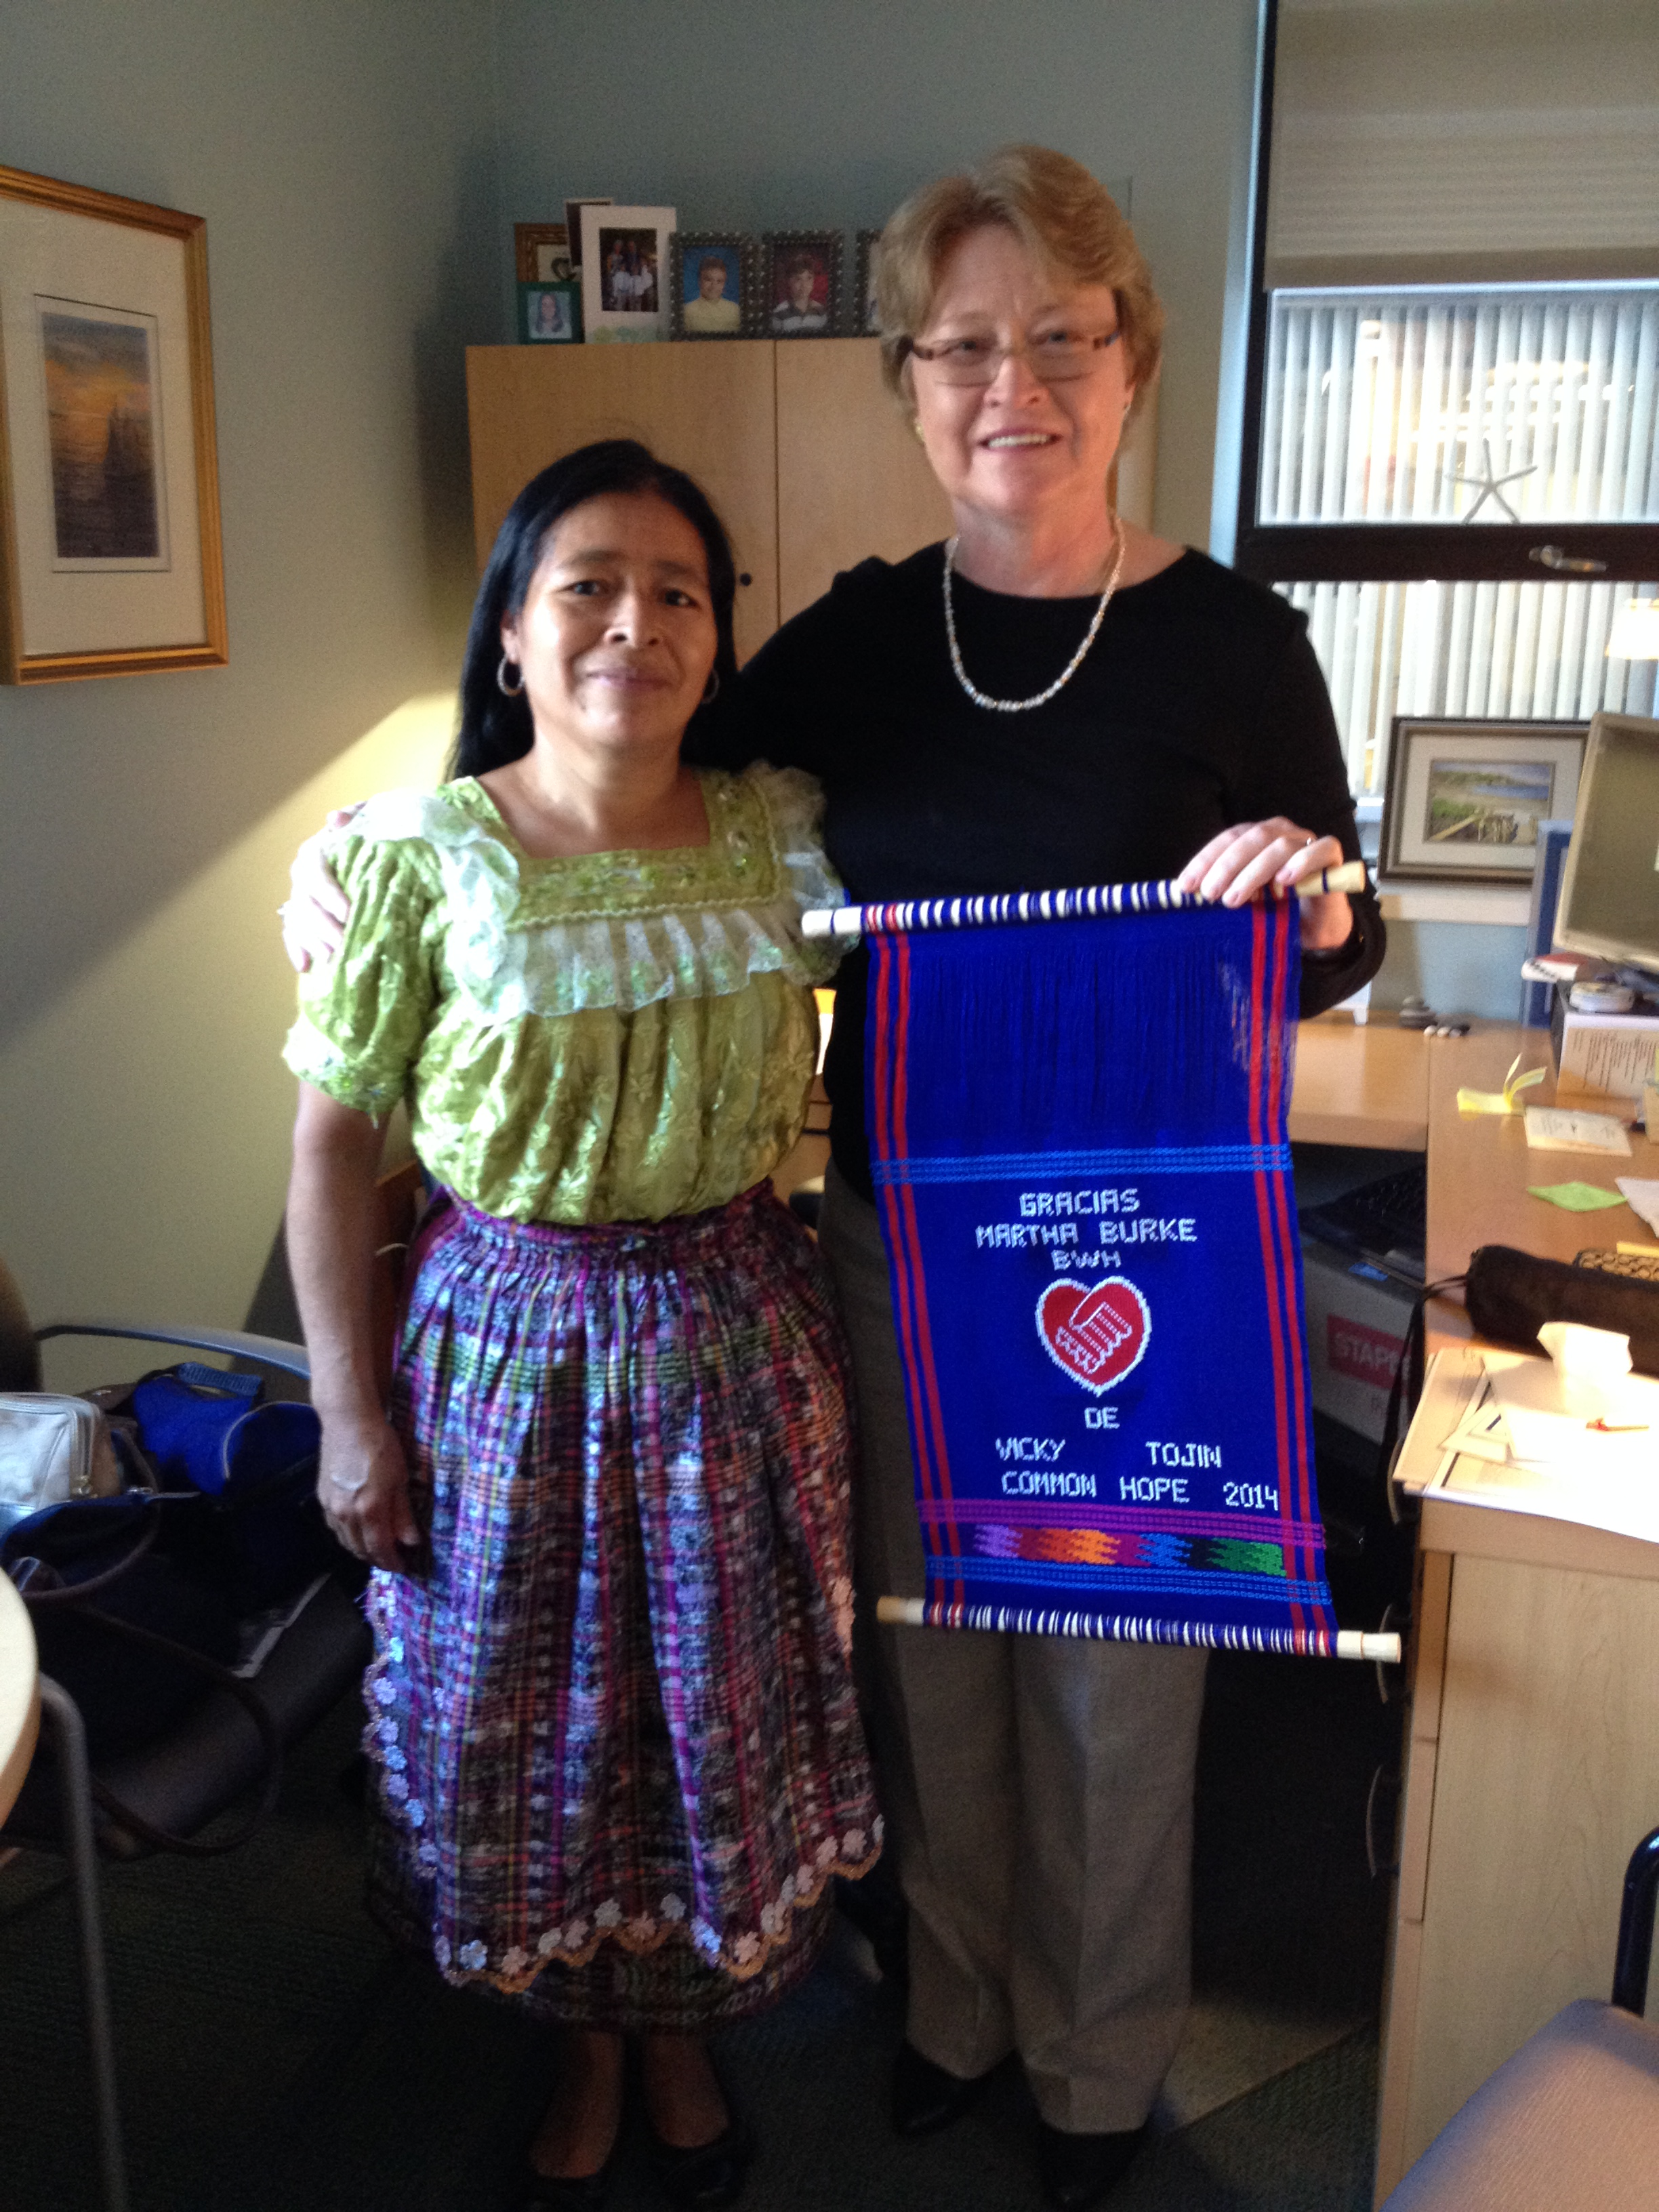 Martha Burke, LICSW received a gift from Visiting Scholar Vicky Tojin.